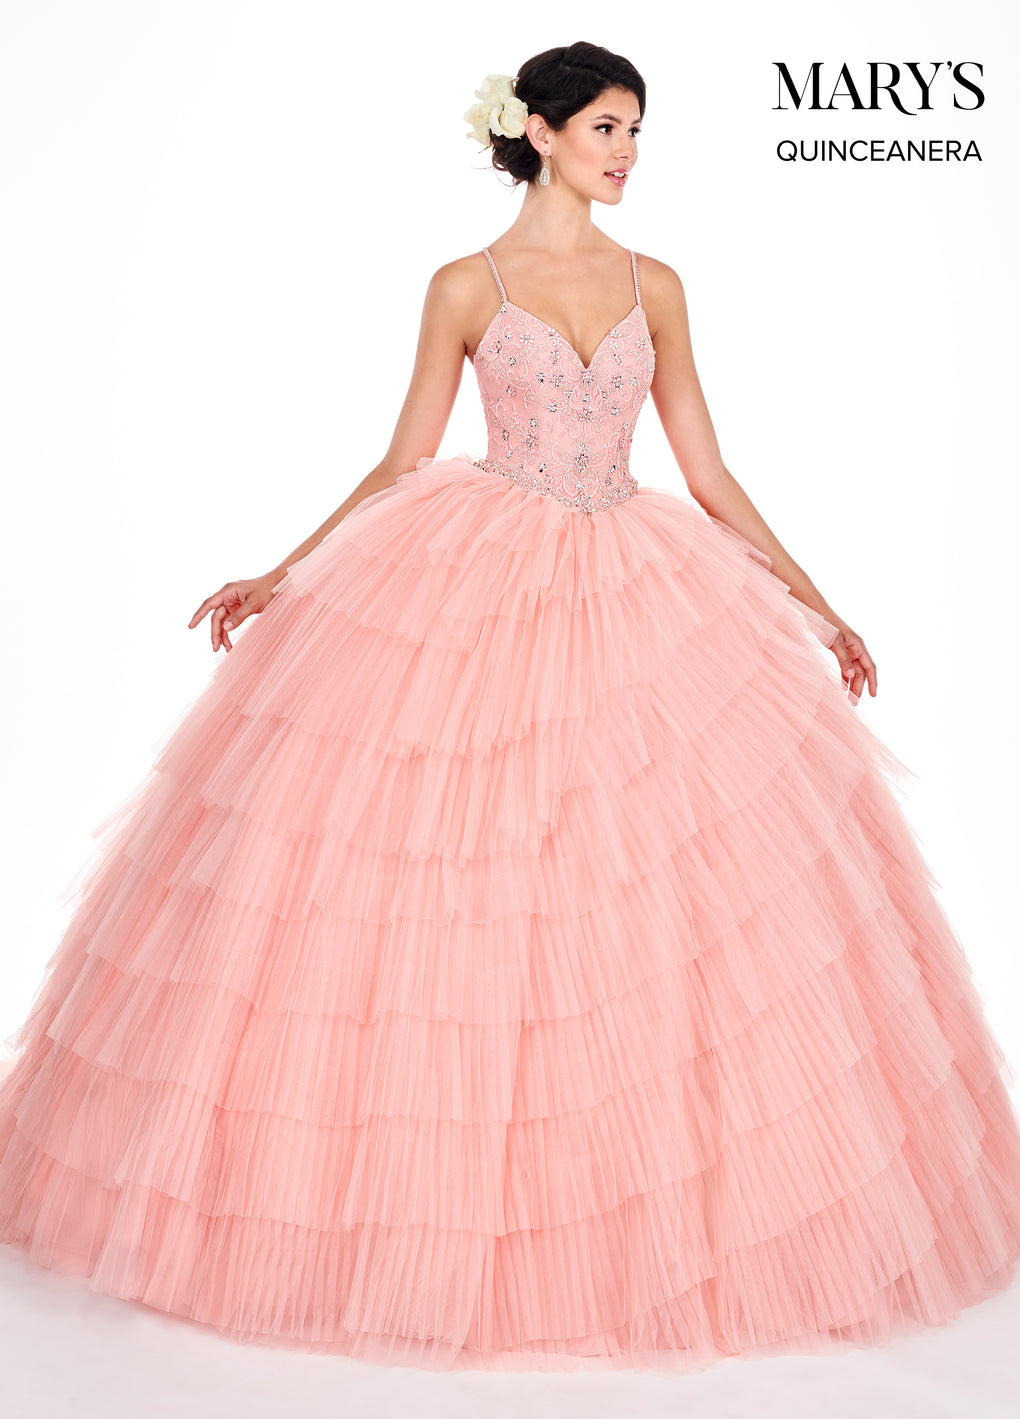 Marys Quinceanera Dresses in Rum Pink or Pacific Blue Color